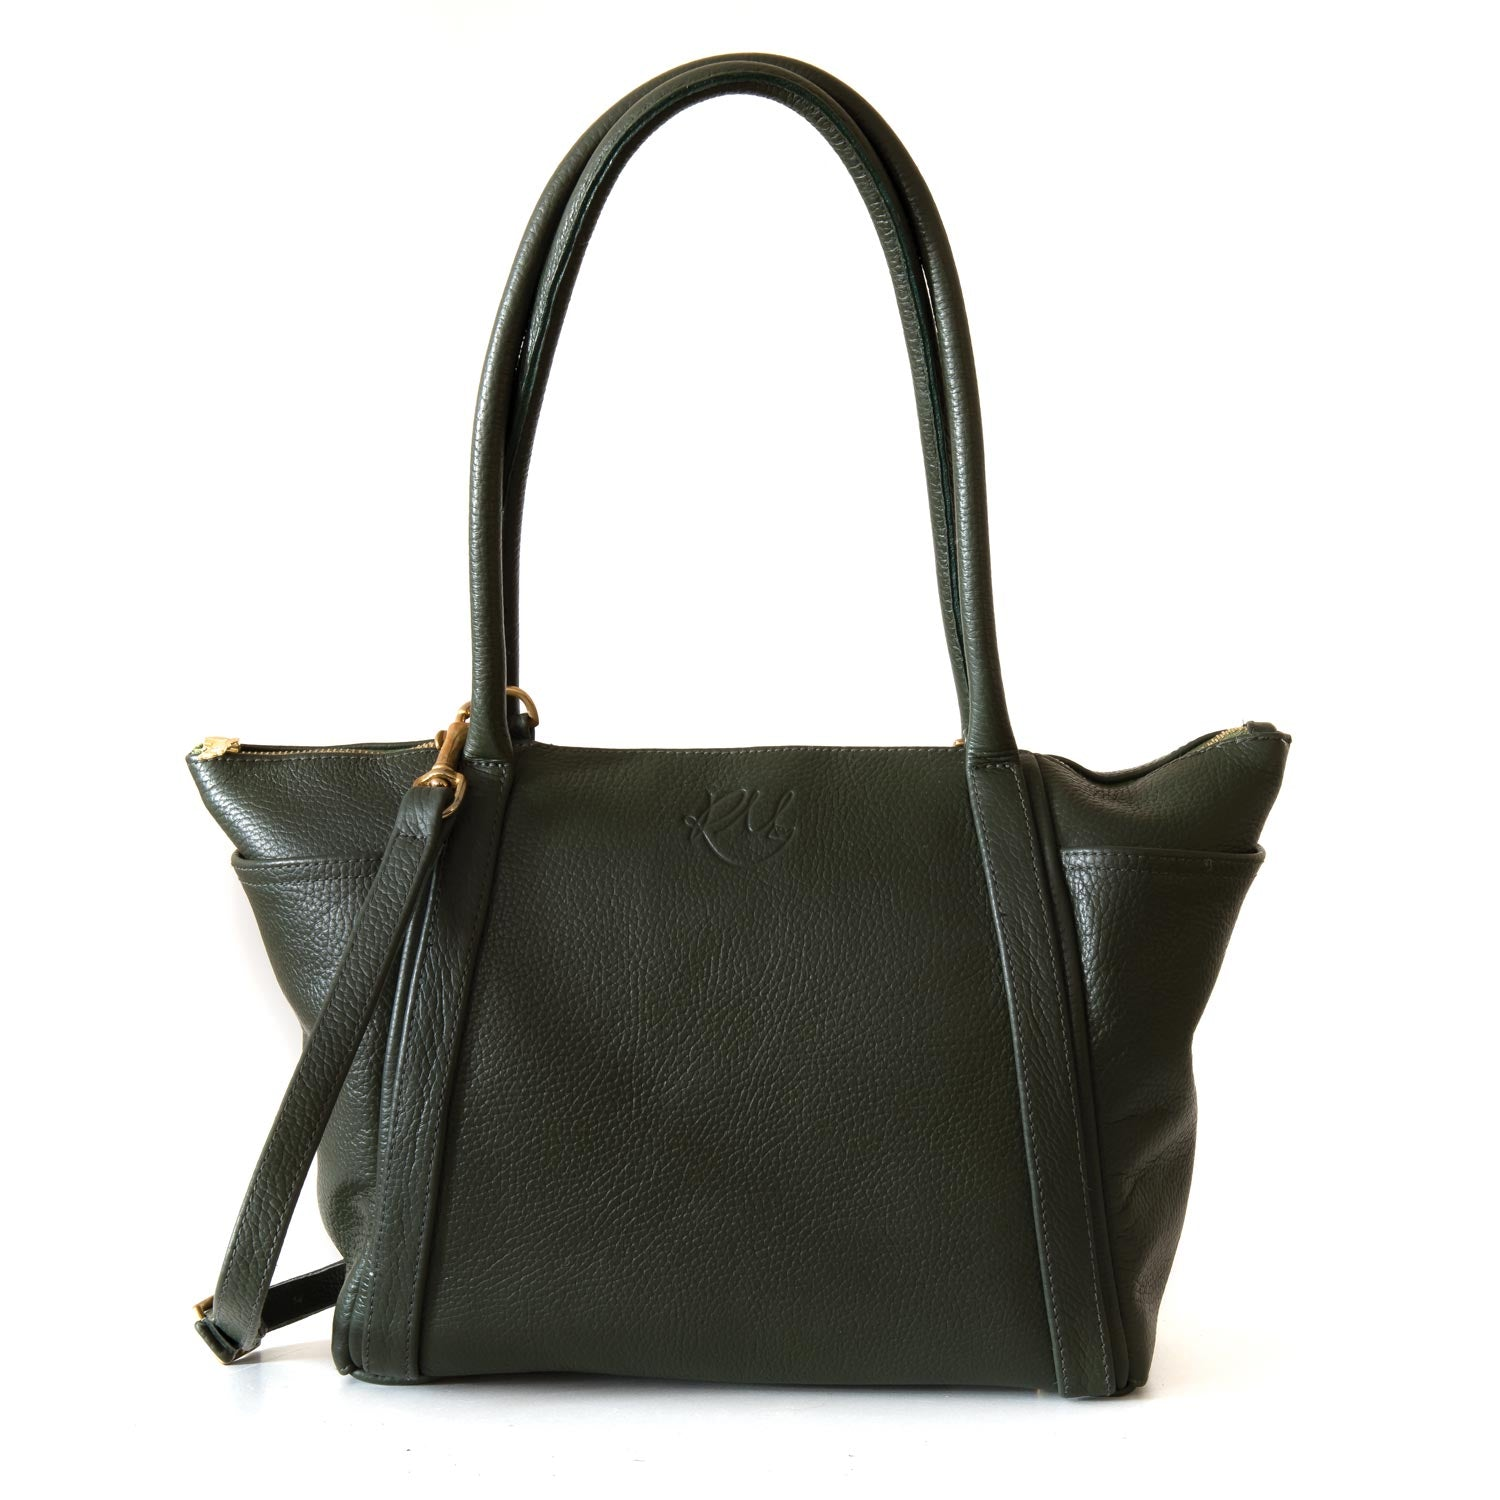 Forget Me Not Handbag in forest green leather